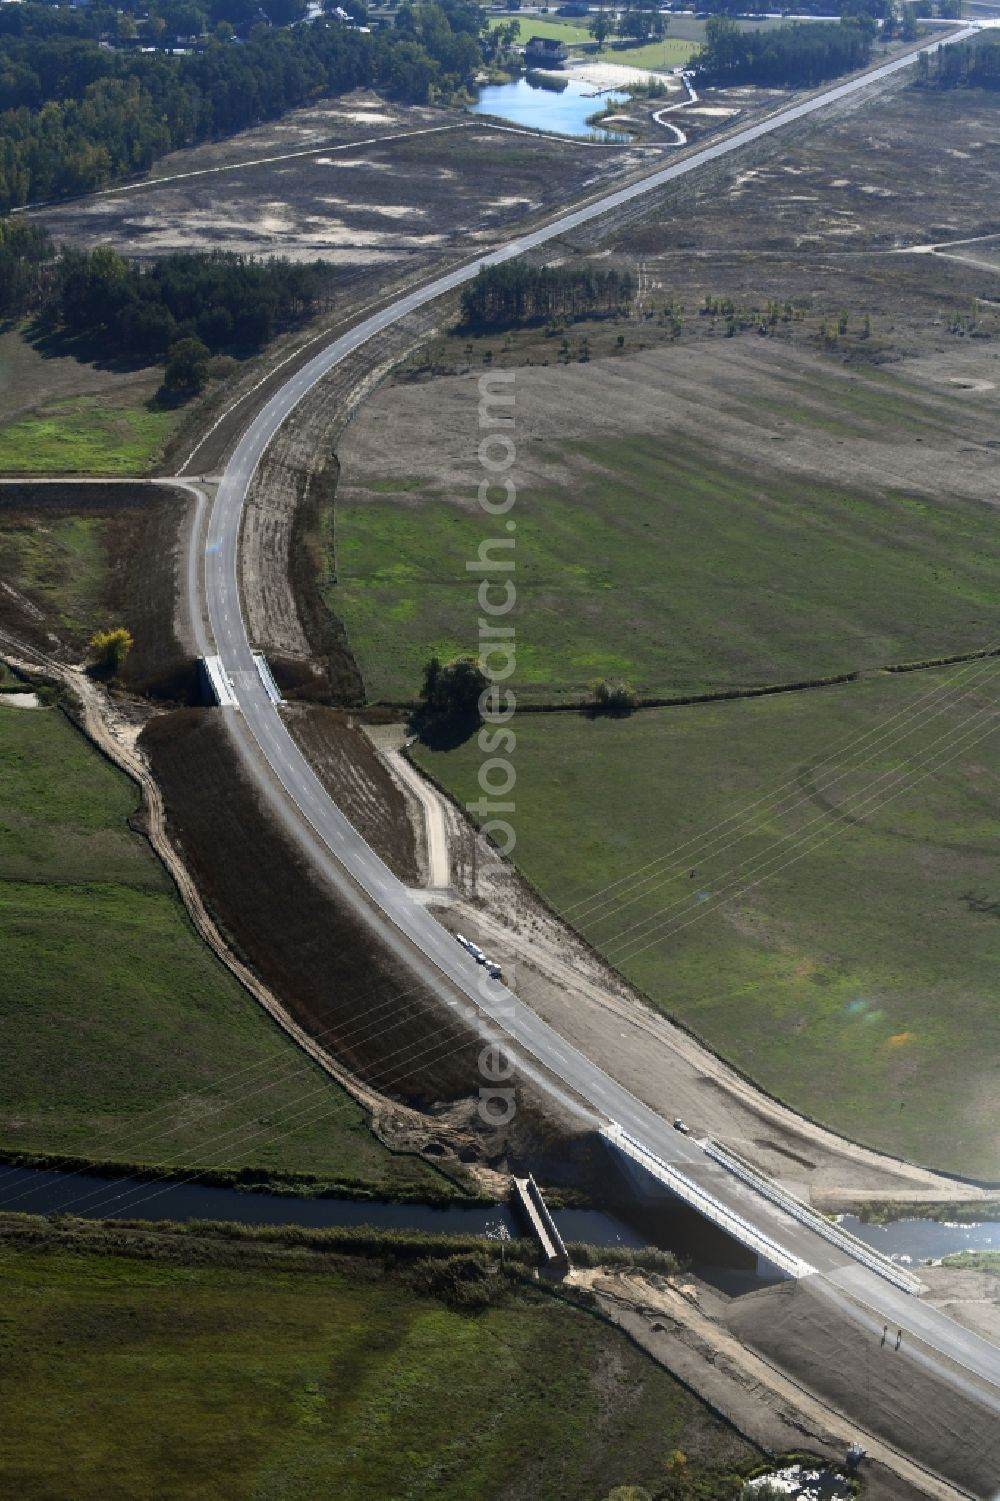 Aerial photograph Breese - Construction of the bypass road in in Breese in the state Brandenburg, Germany